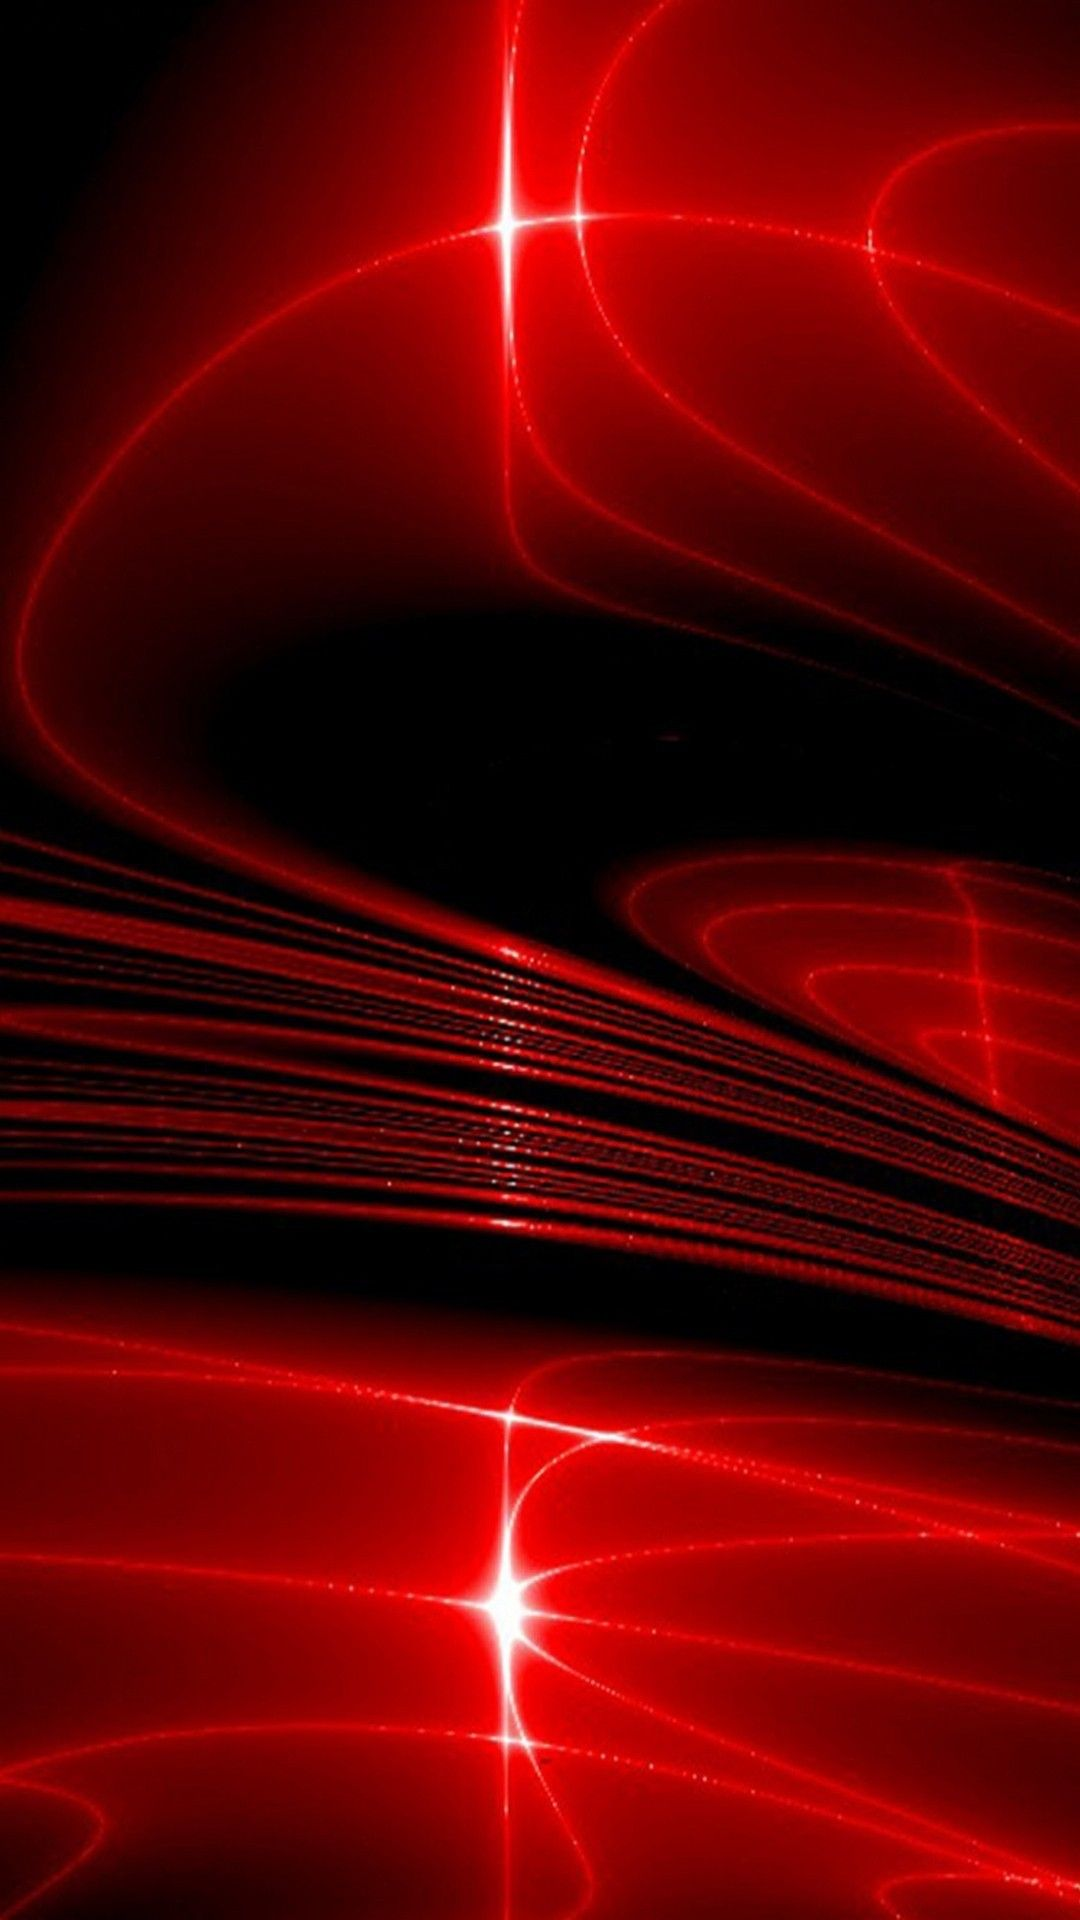 Free Download Cool Abstract Hd Wallpapers For Mobile Best Hd